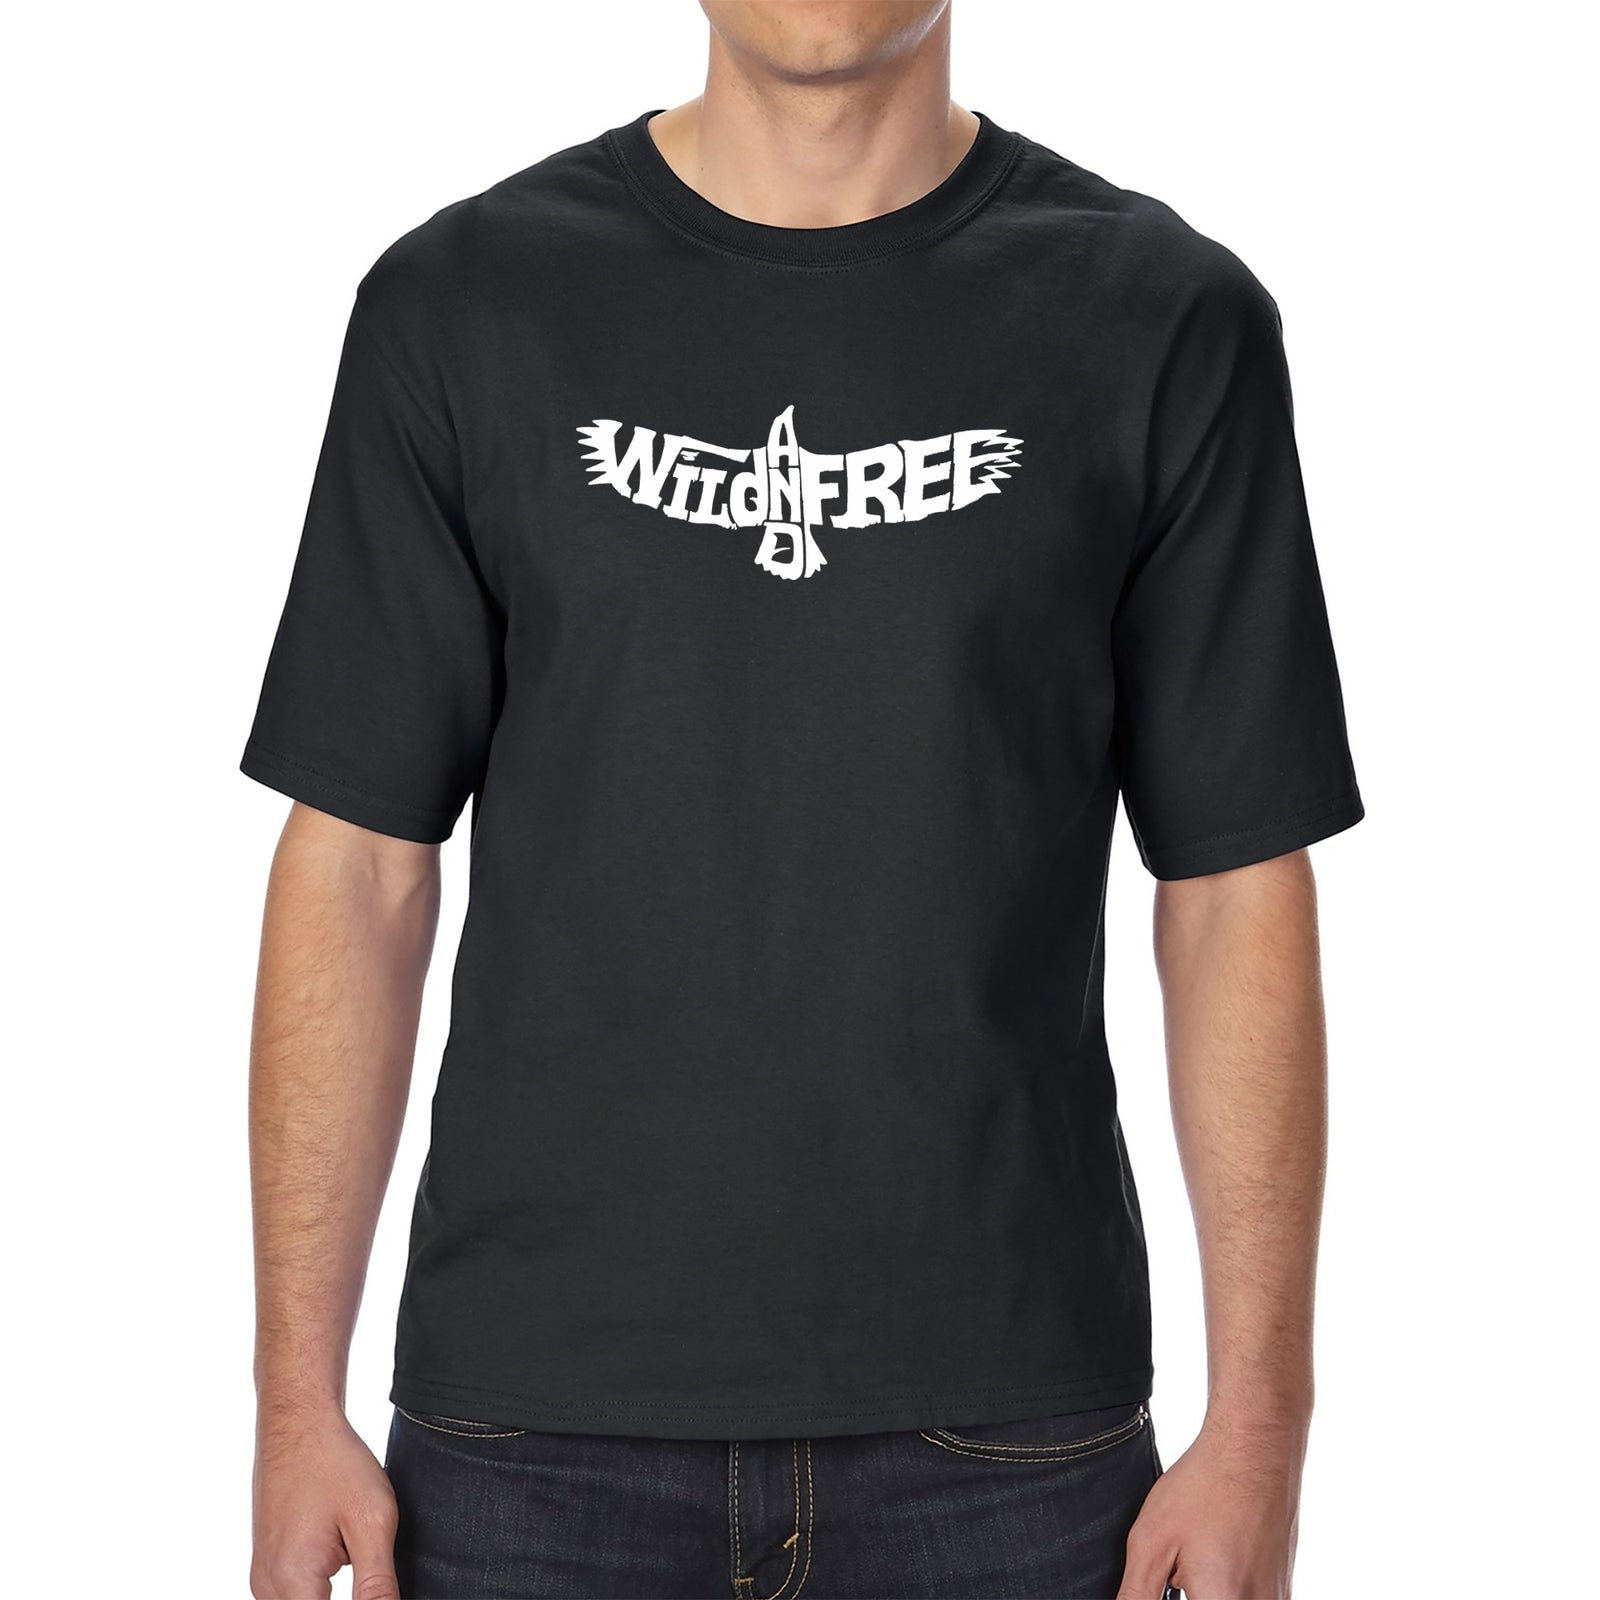 Men's Tall and Long Word Art T-shirt - Wild and Free Eagle